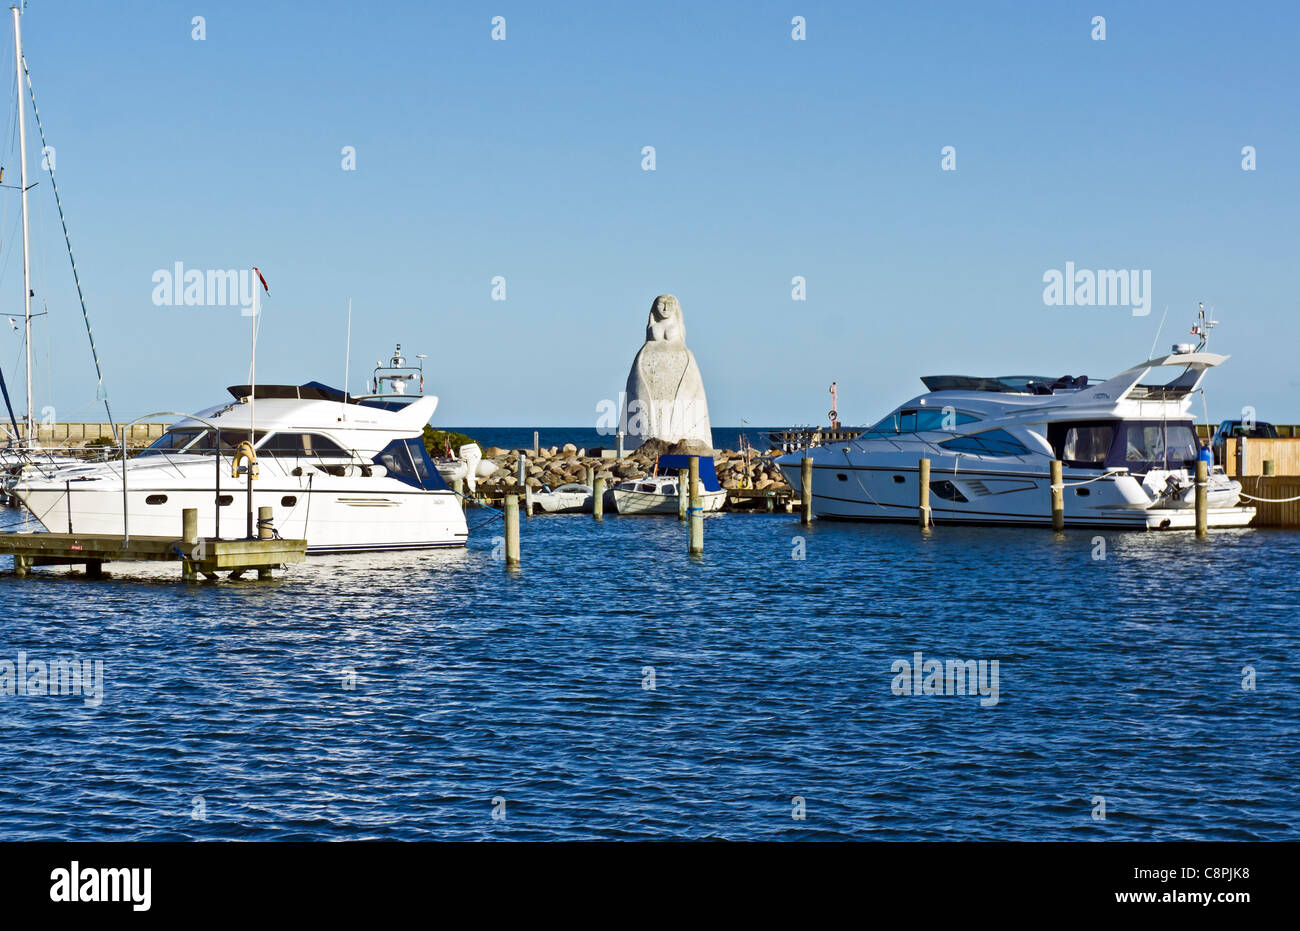 The statue depicting Fruen fra Havet (The lady from the Sea) in Saeby Harbour Jutland Denmark - Stock Image